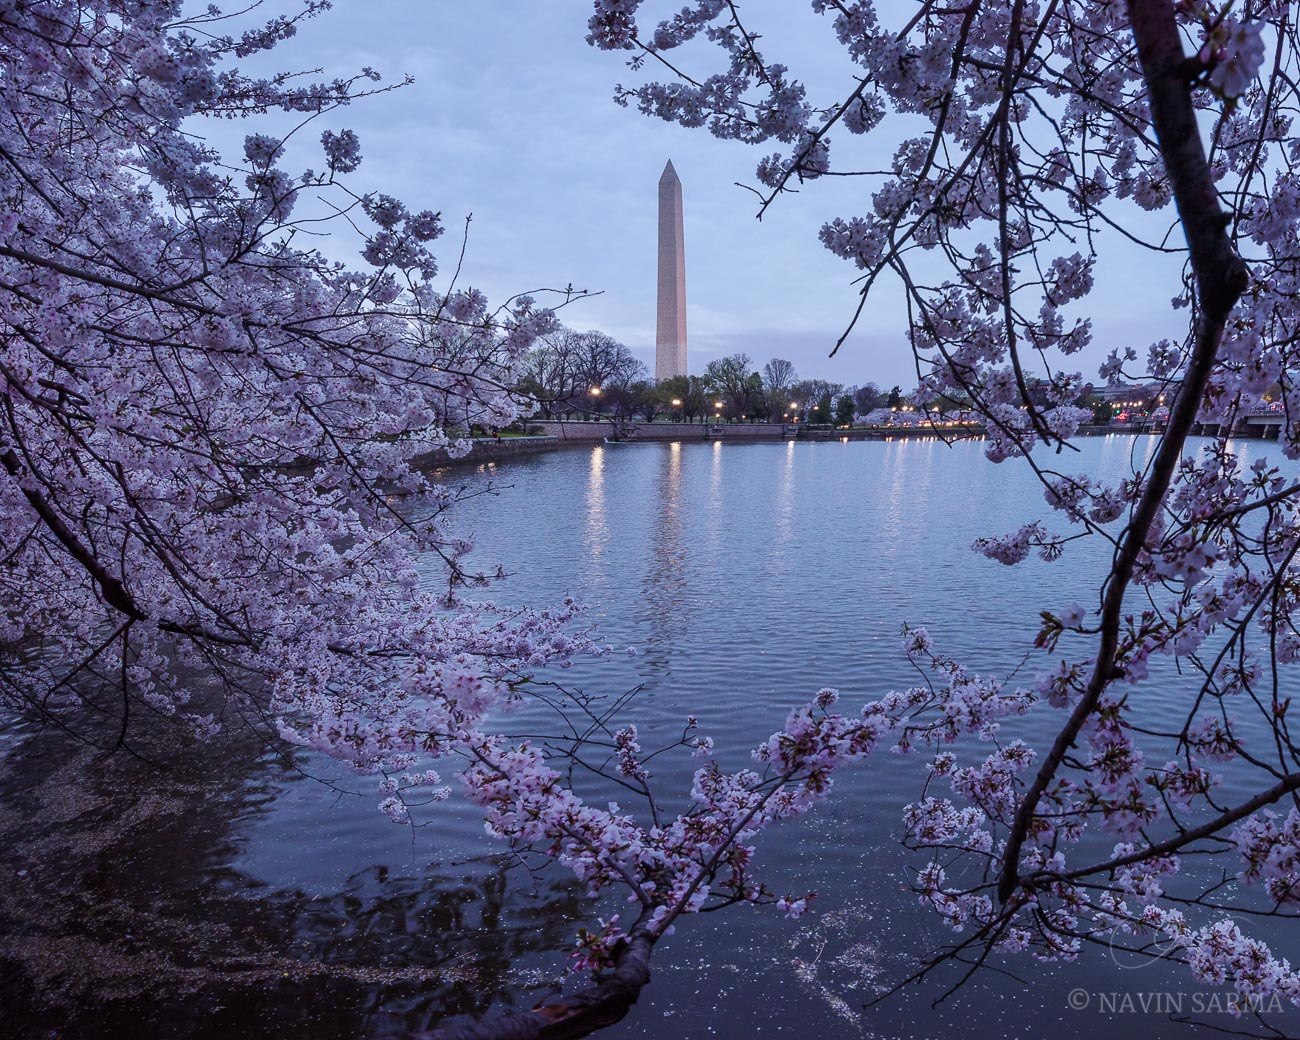 Sunrise at the Tidal Basin Cherry Blossoms